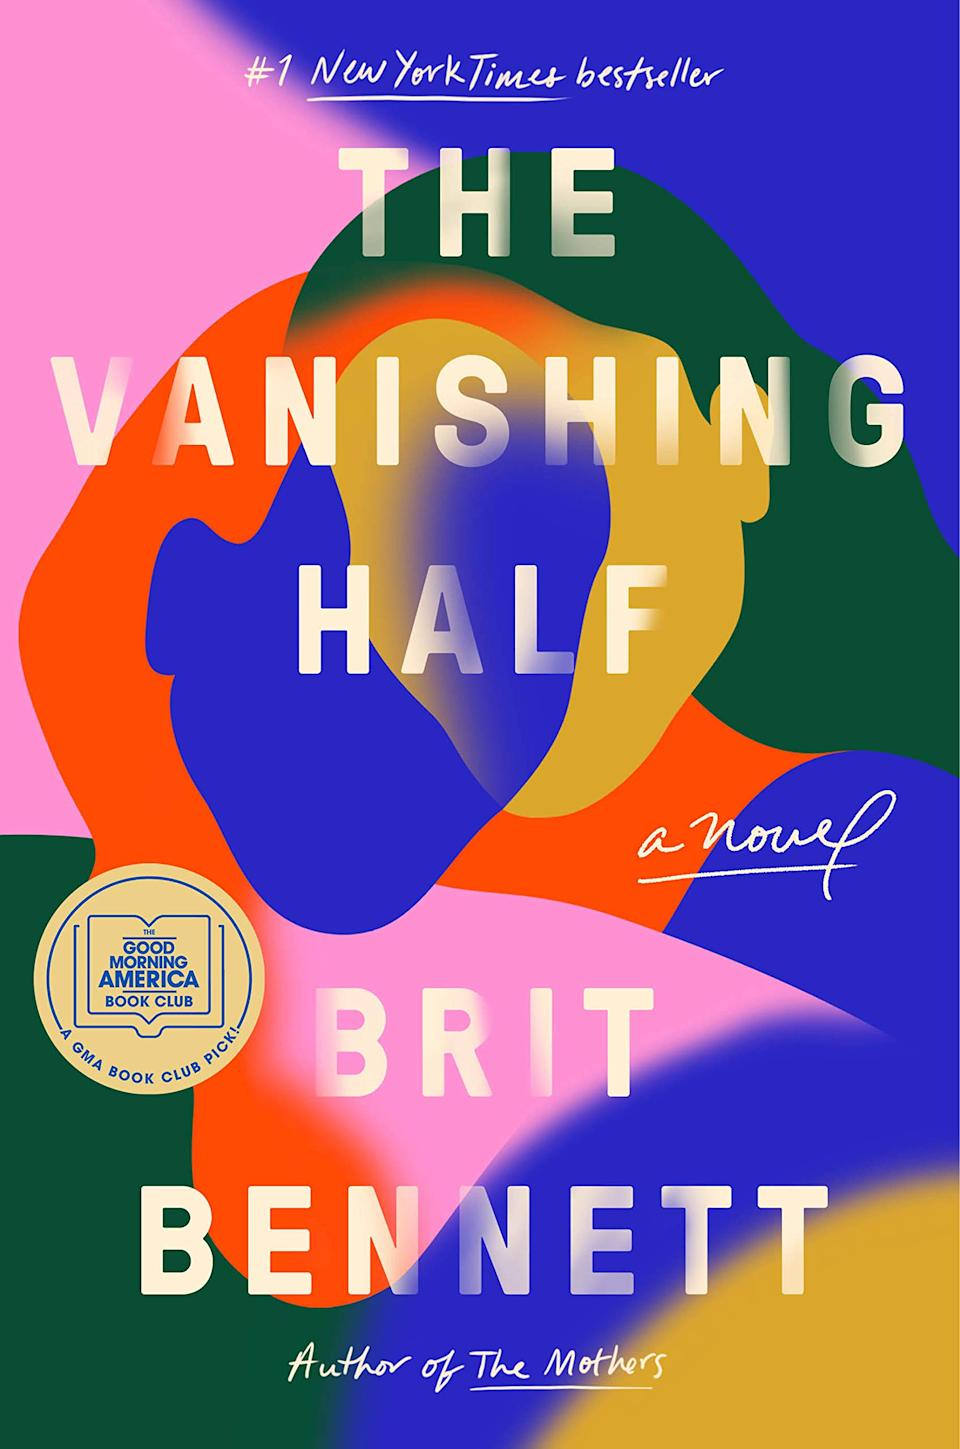 The Vanishing Half by Brit Bennett (Photo via Amazon)